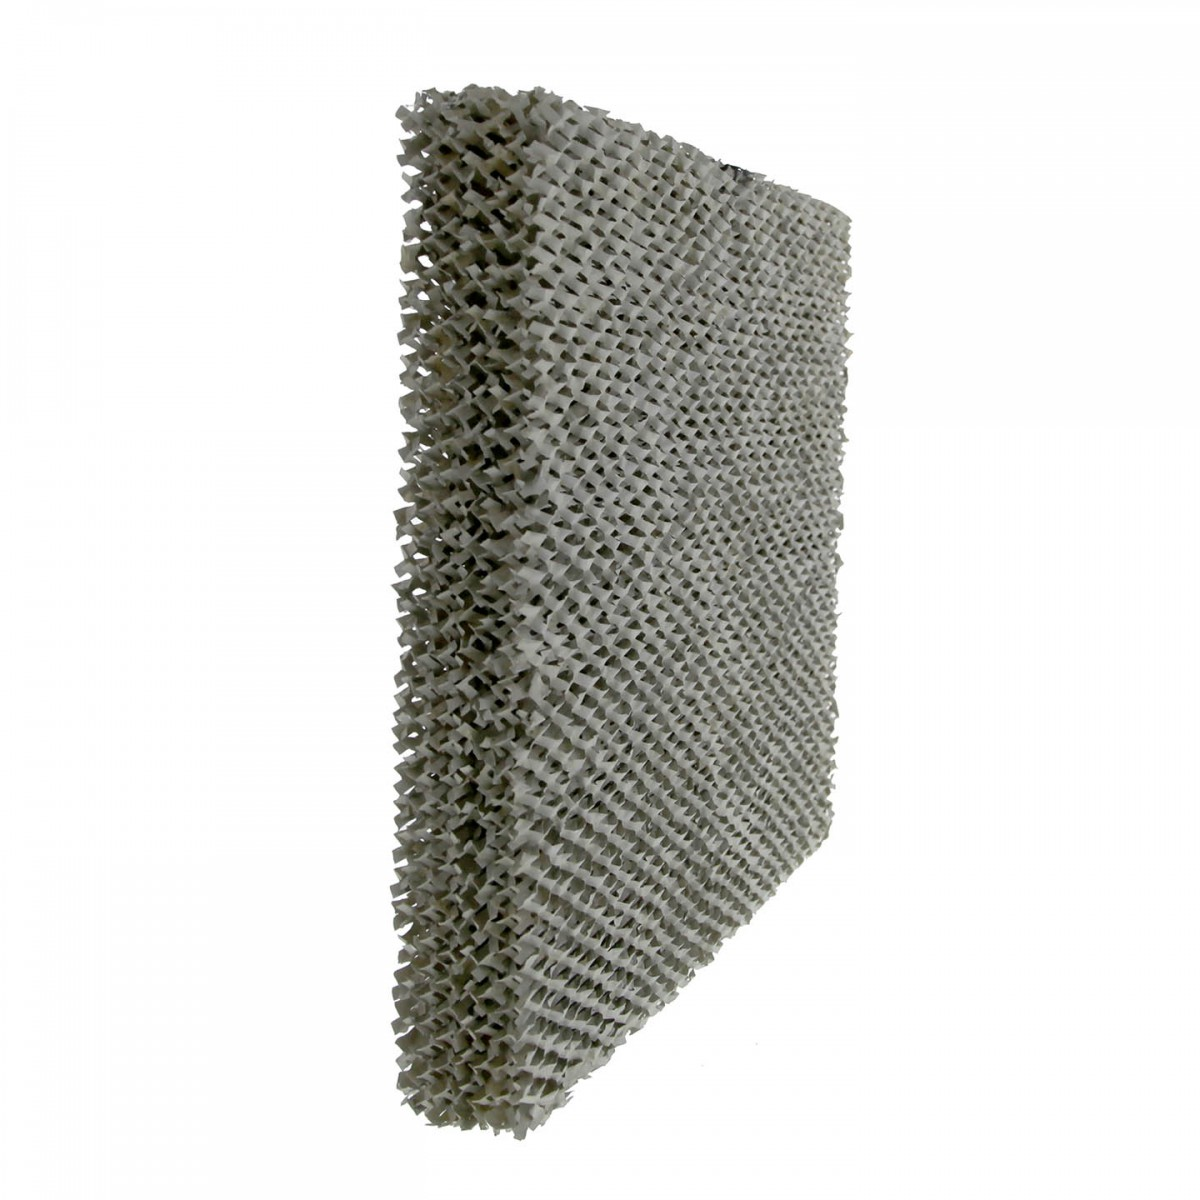 Aprilaire 440 Humidifier Filter Replacement By Tier1